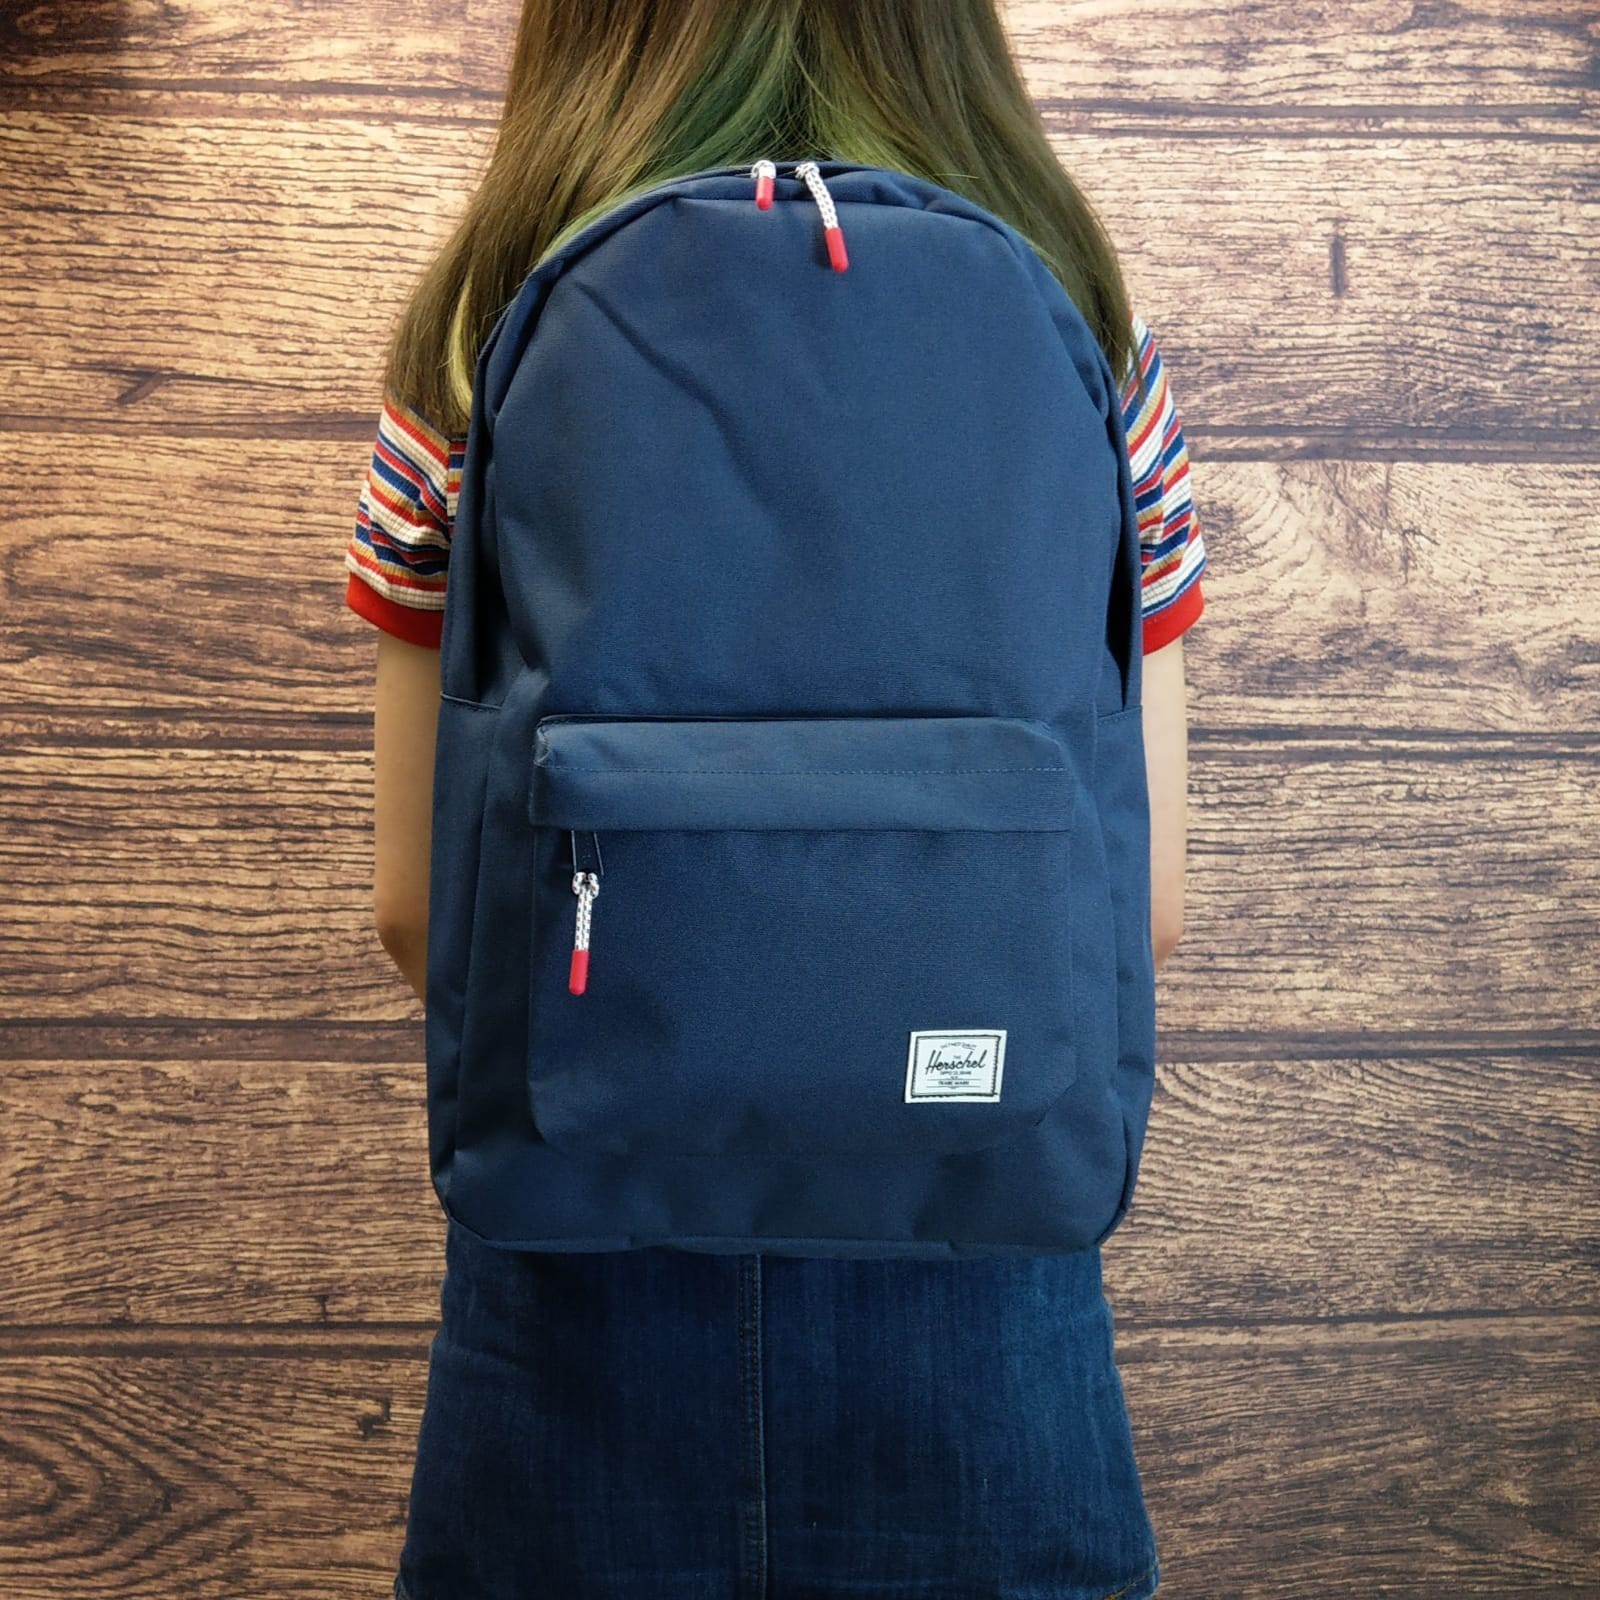 0daca091ca6d5 Herschel Supply Co. Classic Backpack 背囊海軍藍色Navy 10500-00007 ...